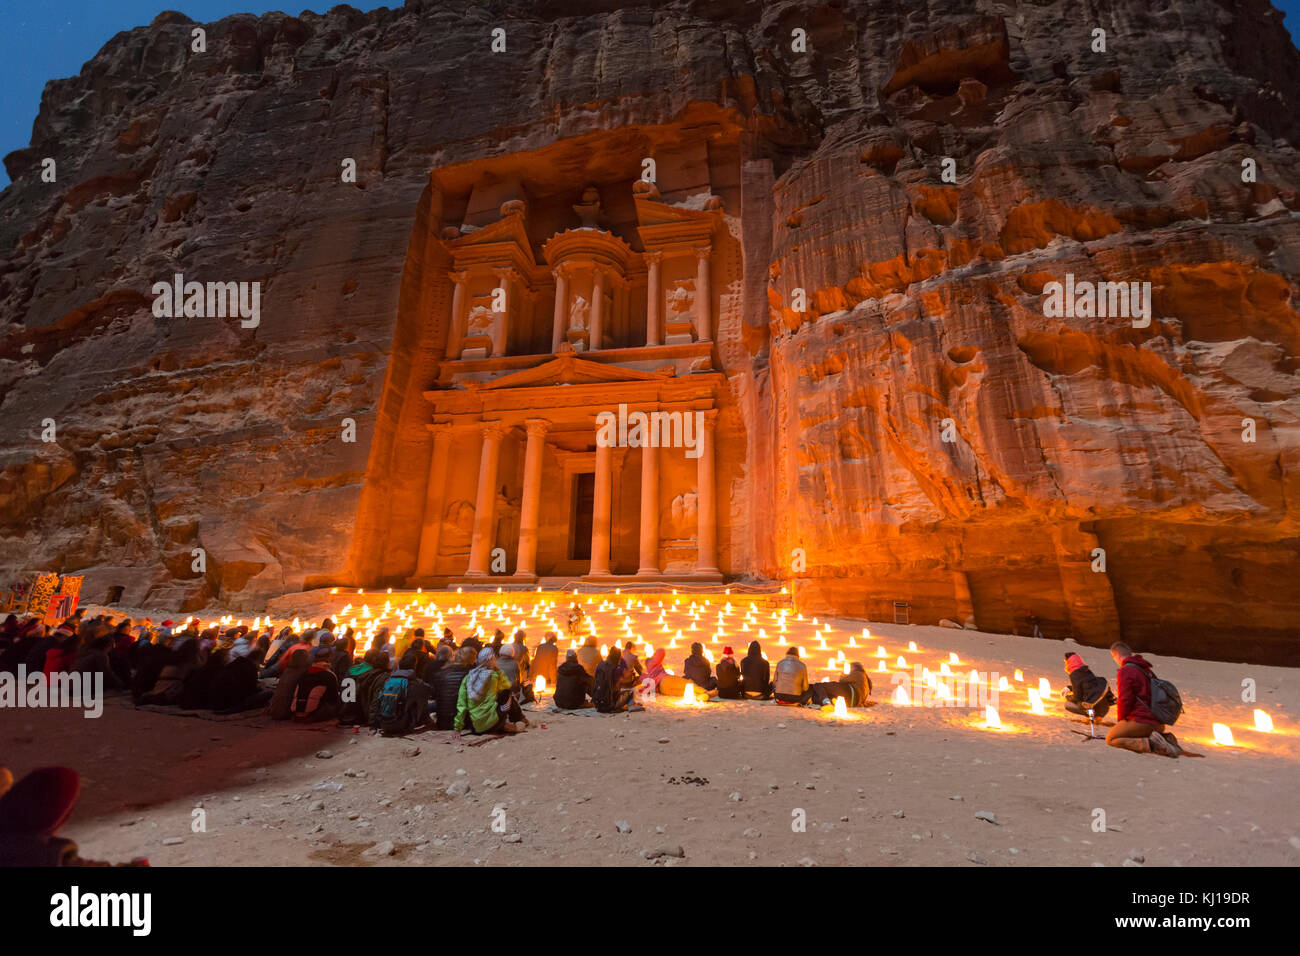 Petra, Jordan, December 24th 2015, The Treasury, Petra By Night. An Ancient City of Petra, Al Khazneh in Jordan Stock Photo